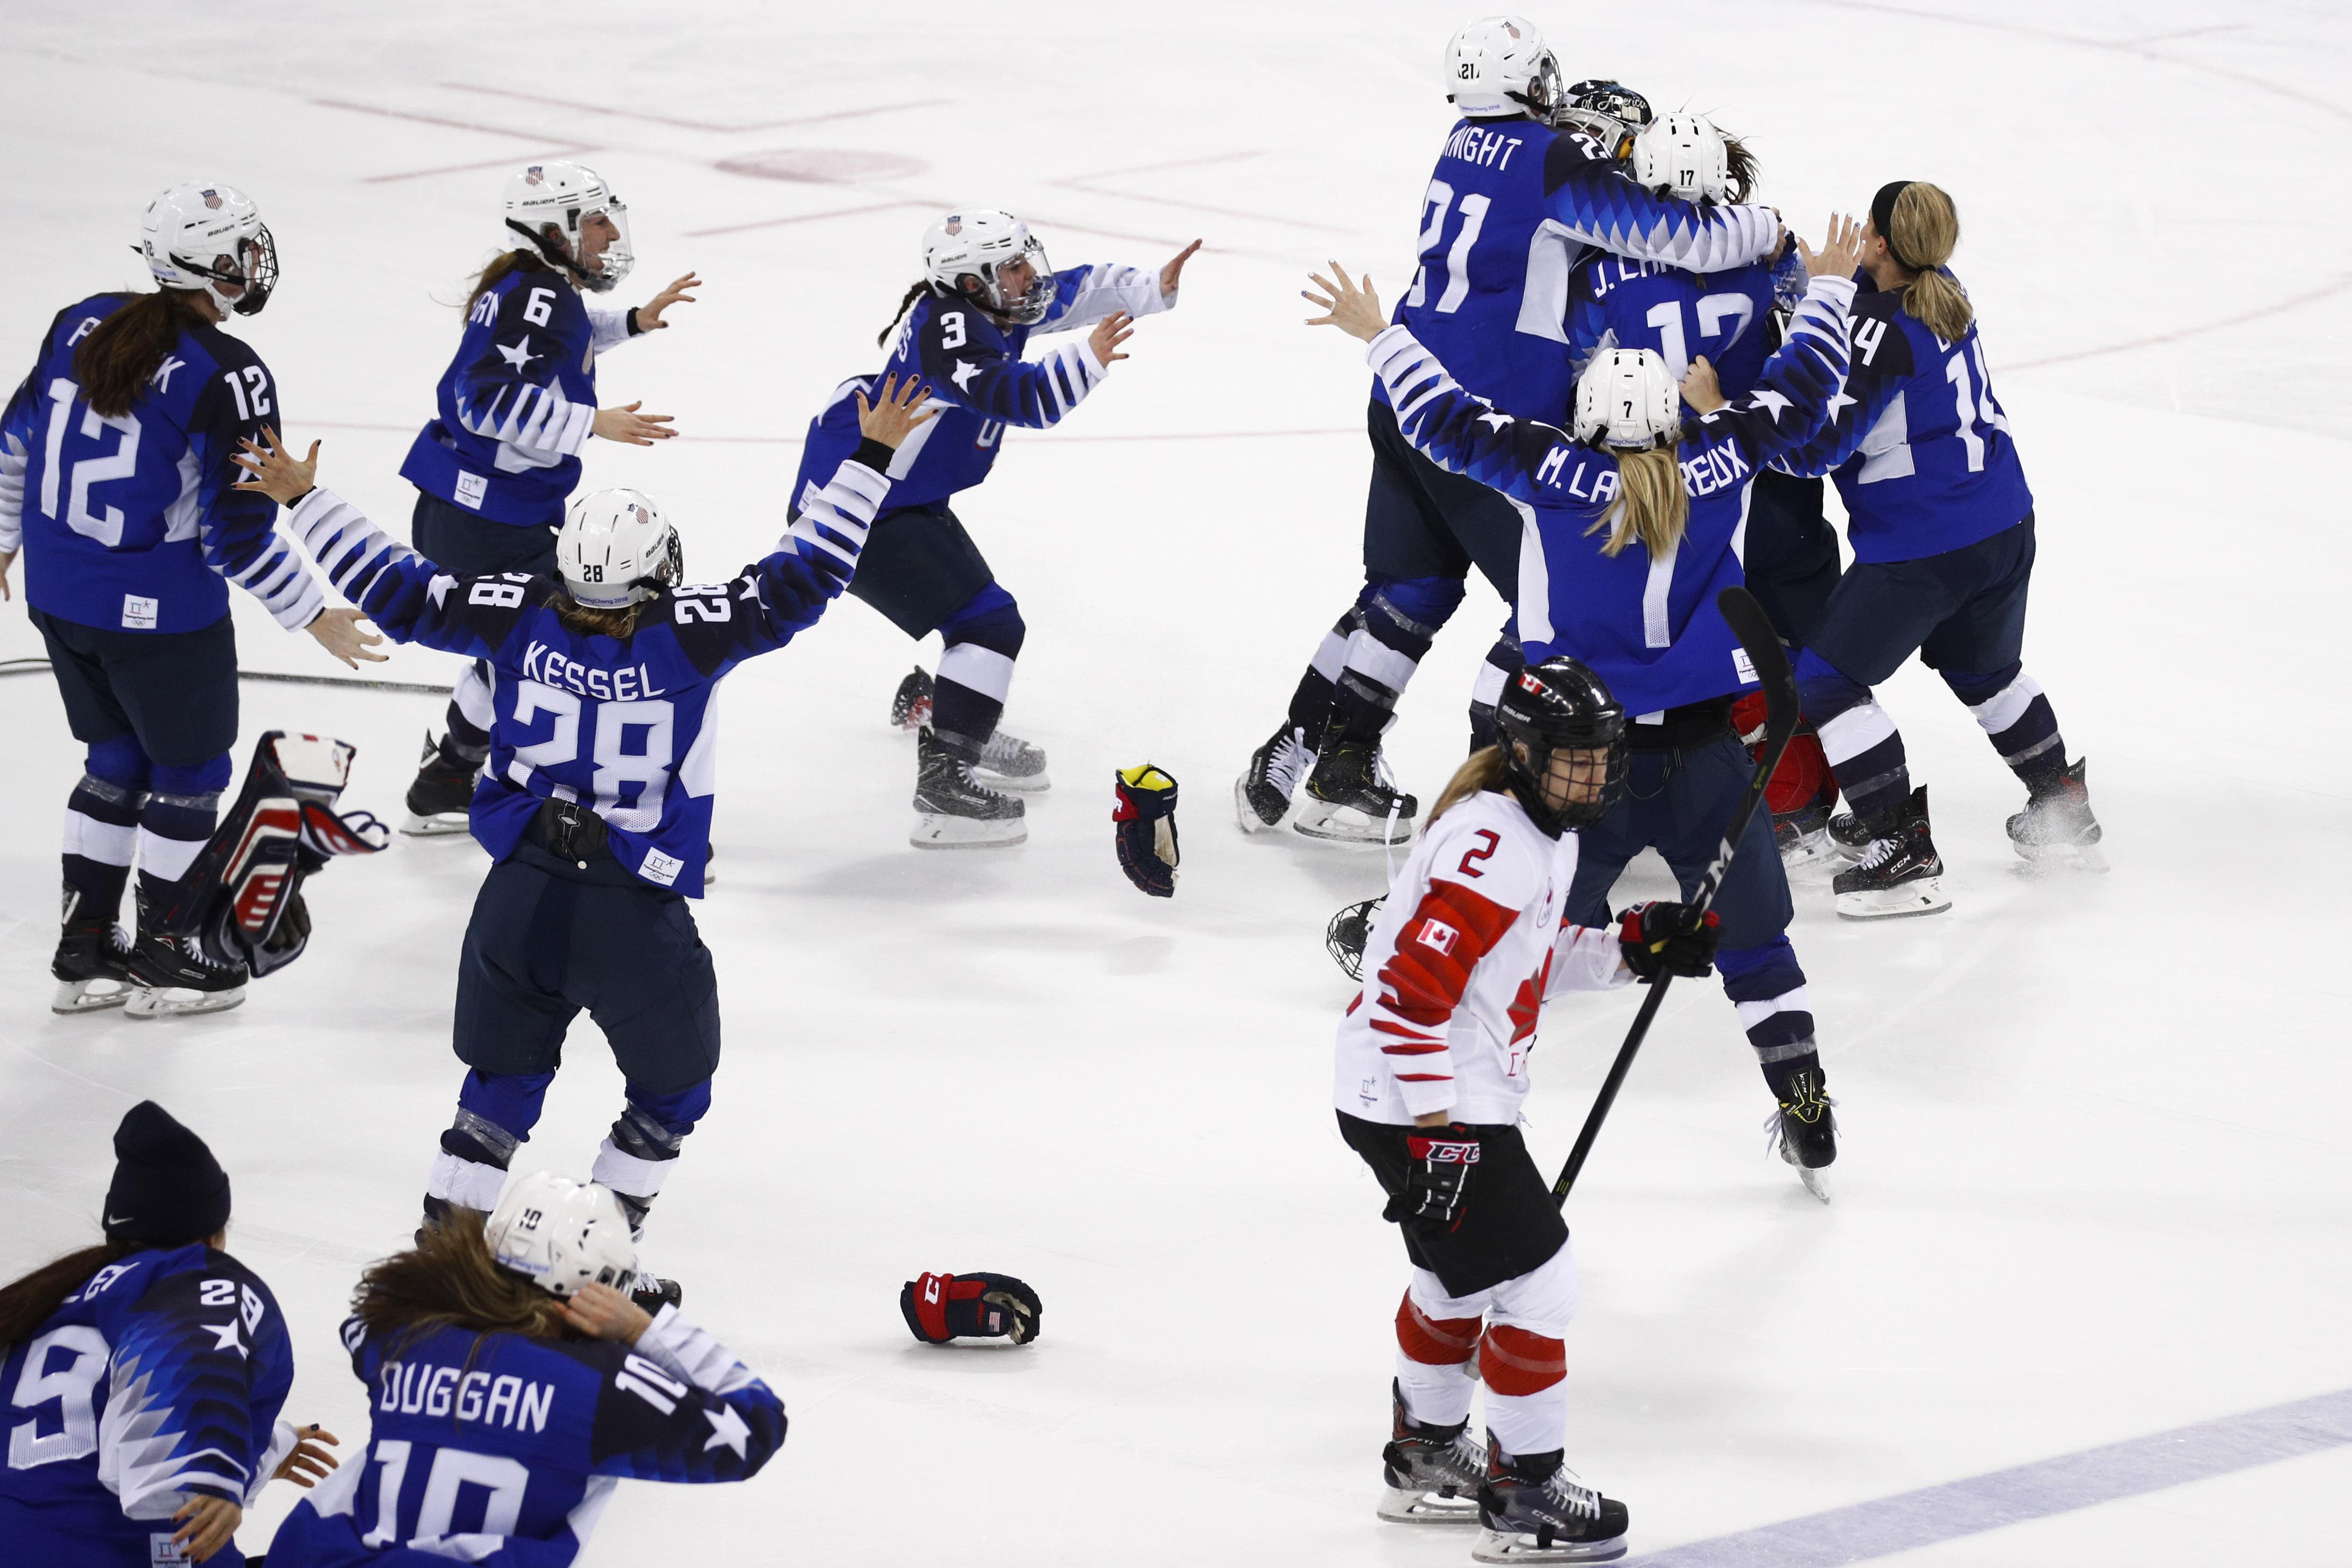 Grip on sports if you can pull yourself away from the olympic drama canadas meghan agosta 2 skates away as the united states players celebrate after winning solutioingenieria Images